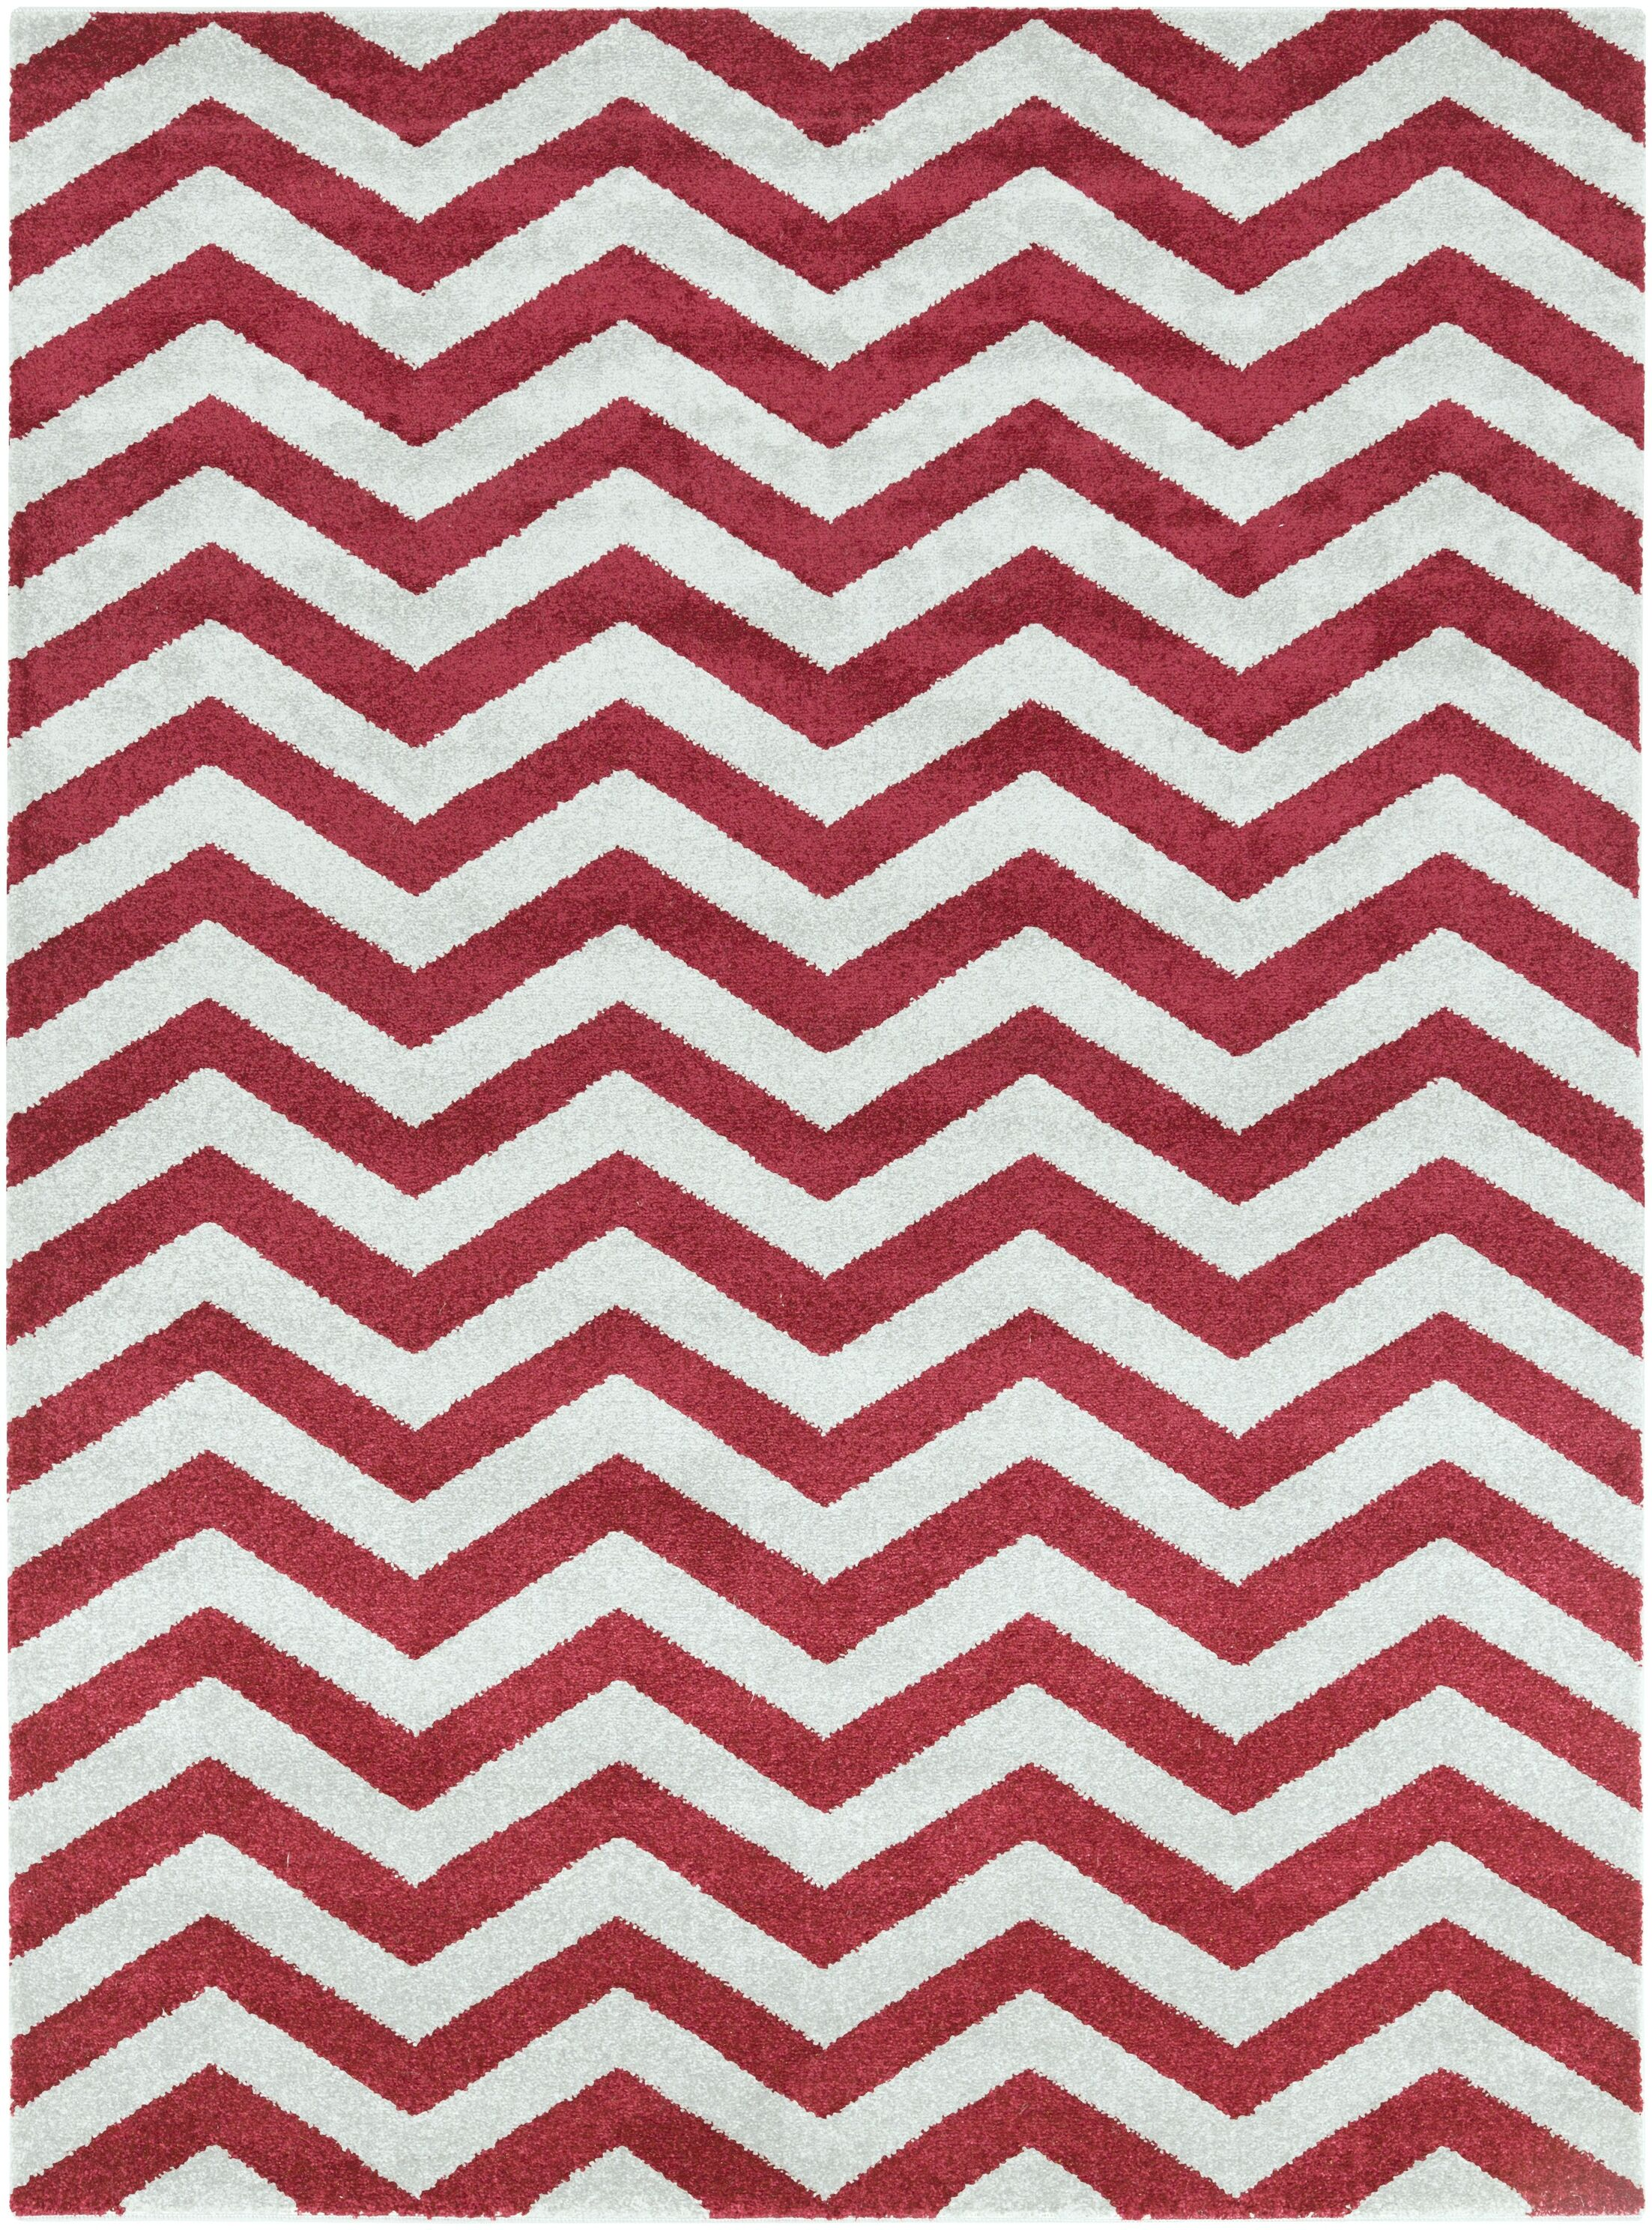 Greer Cherry Chevron Area Rug Rug Size: Rectangle 9'3